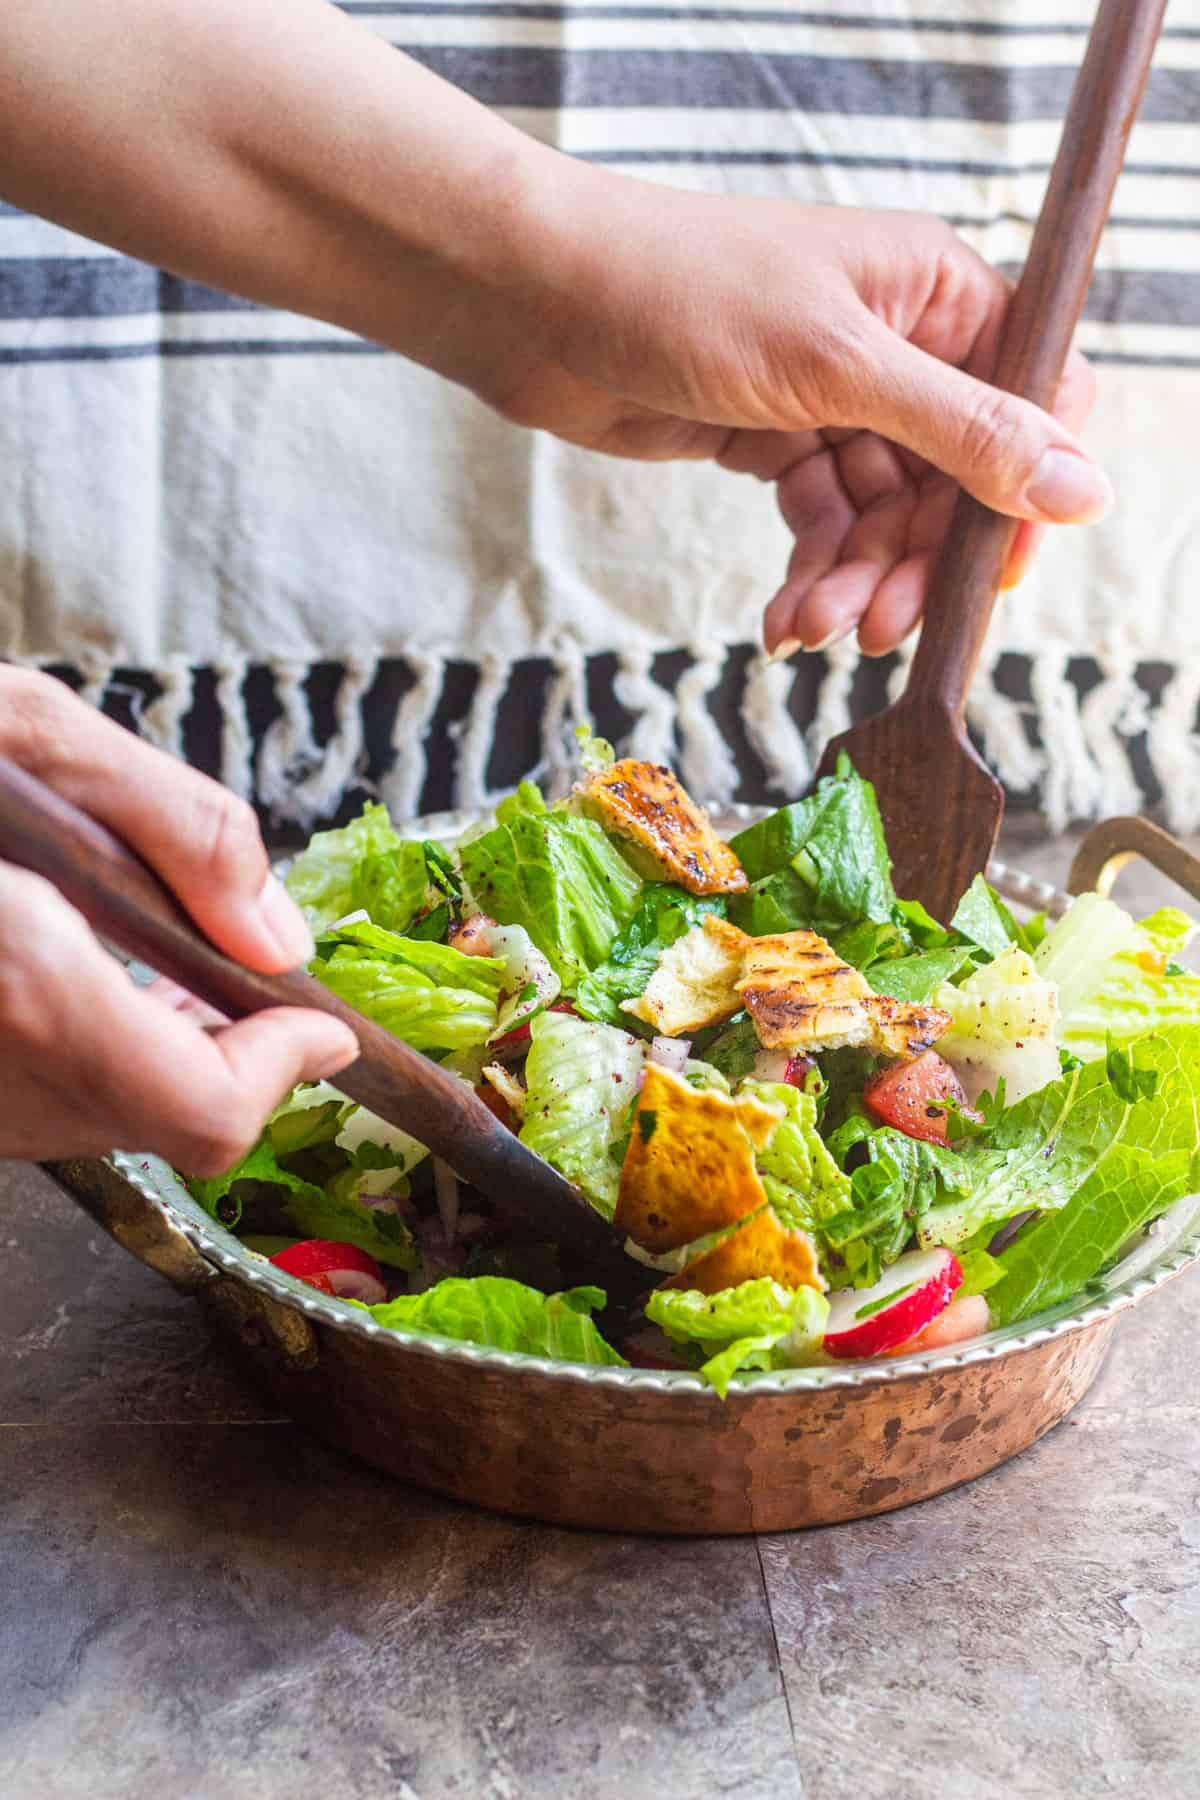 fattoush salad recipe is easy and very tasty. Mix the greens with crispy toasted pita.